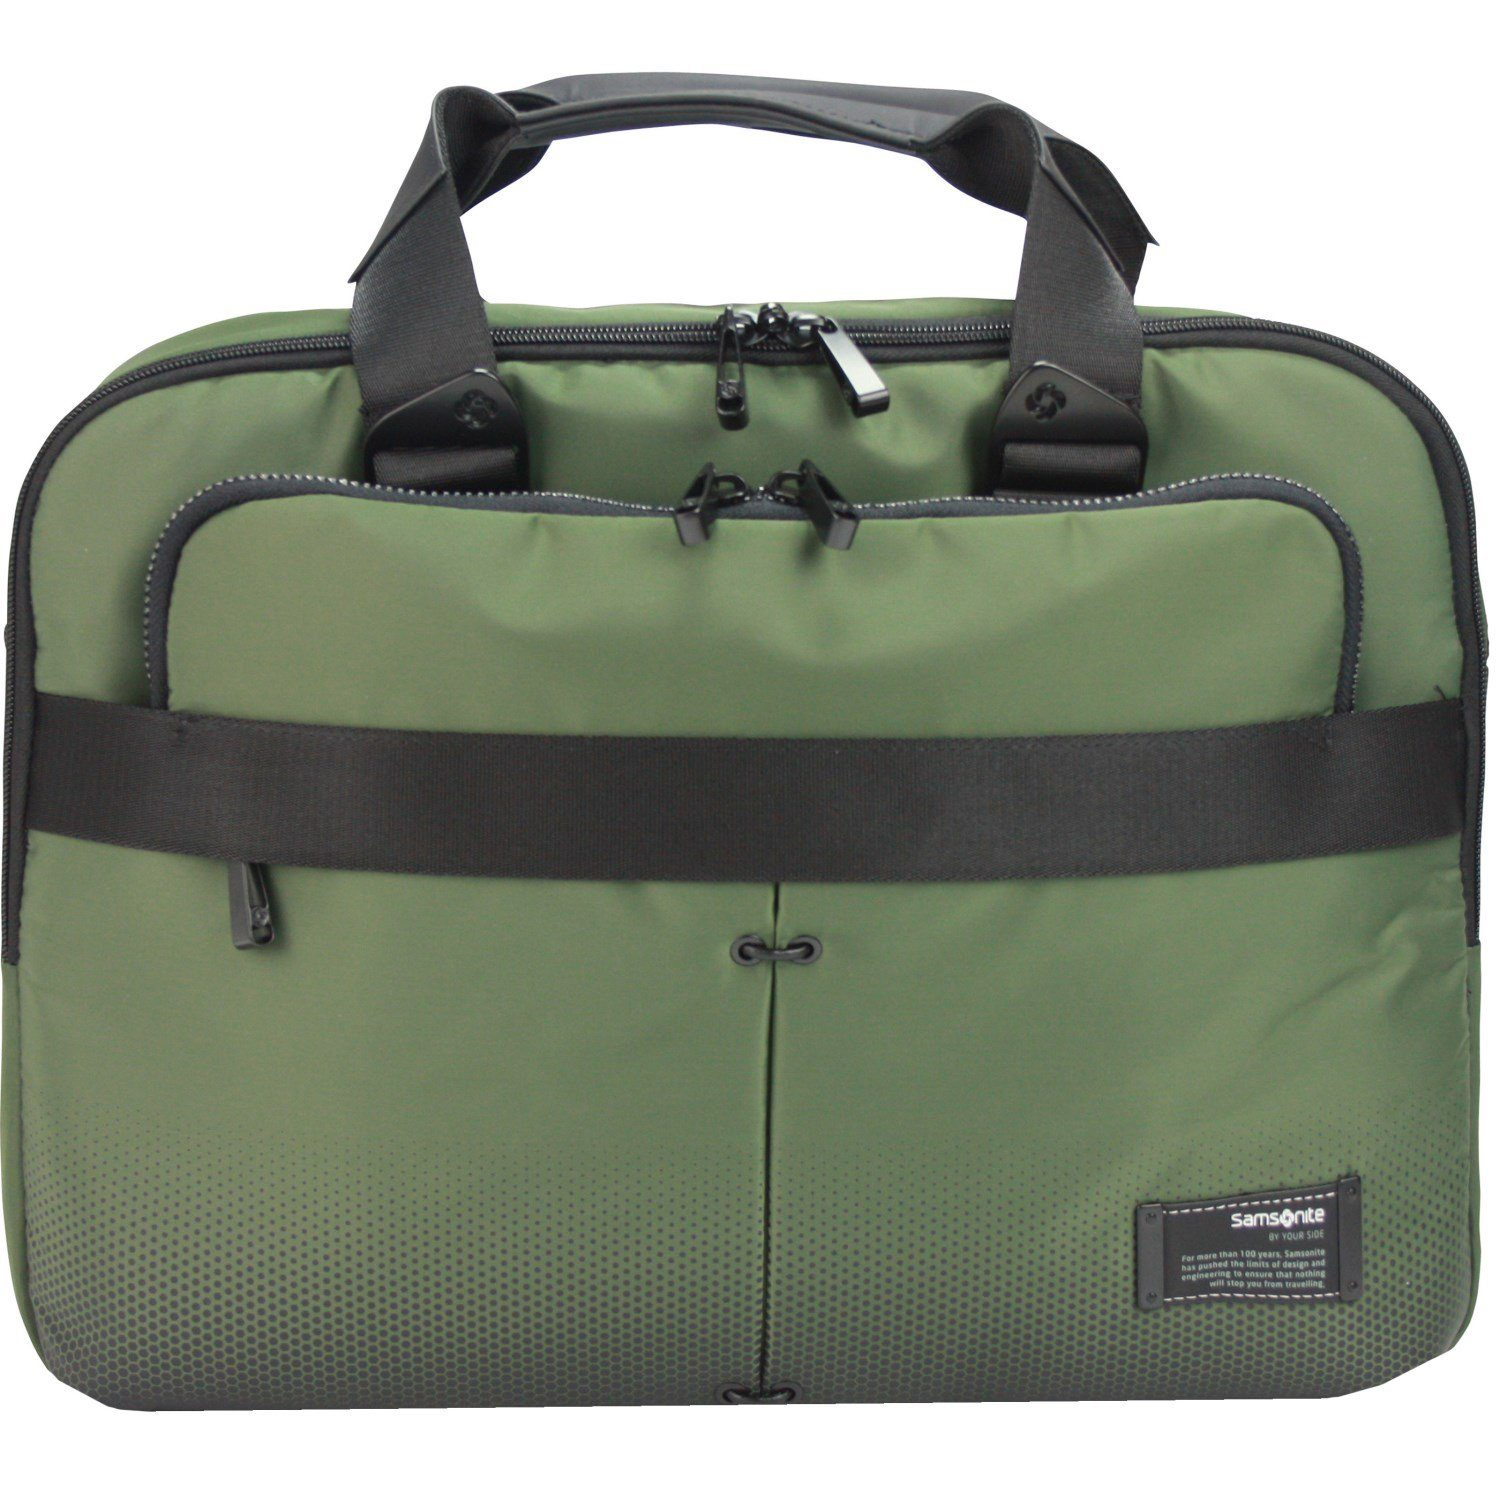 Samsonite Samsonite Cityvibe Businesstasche 43 cm Laptopfach